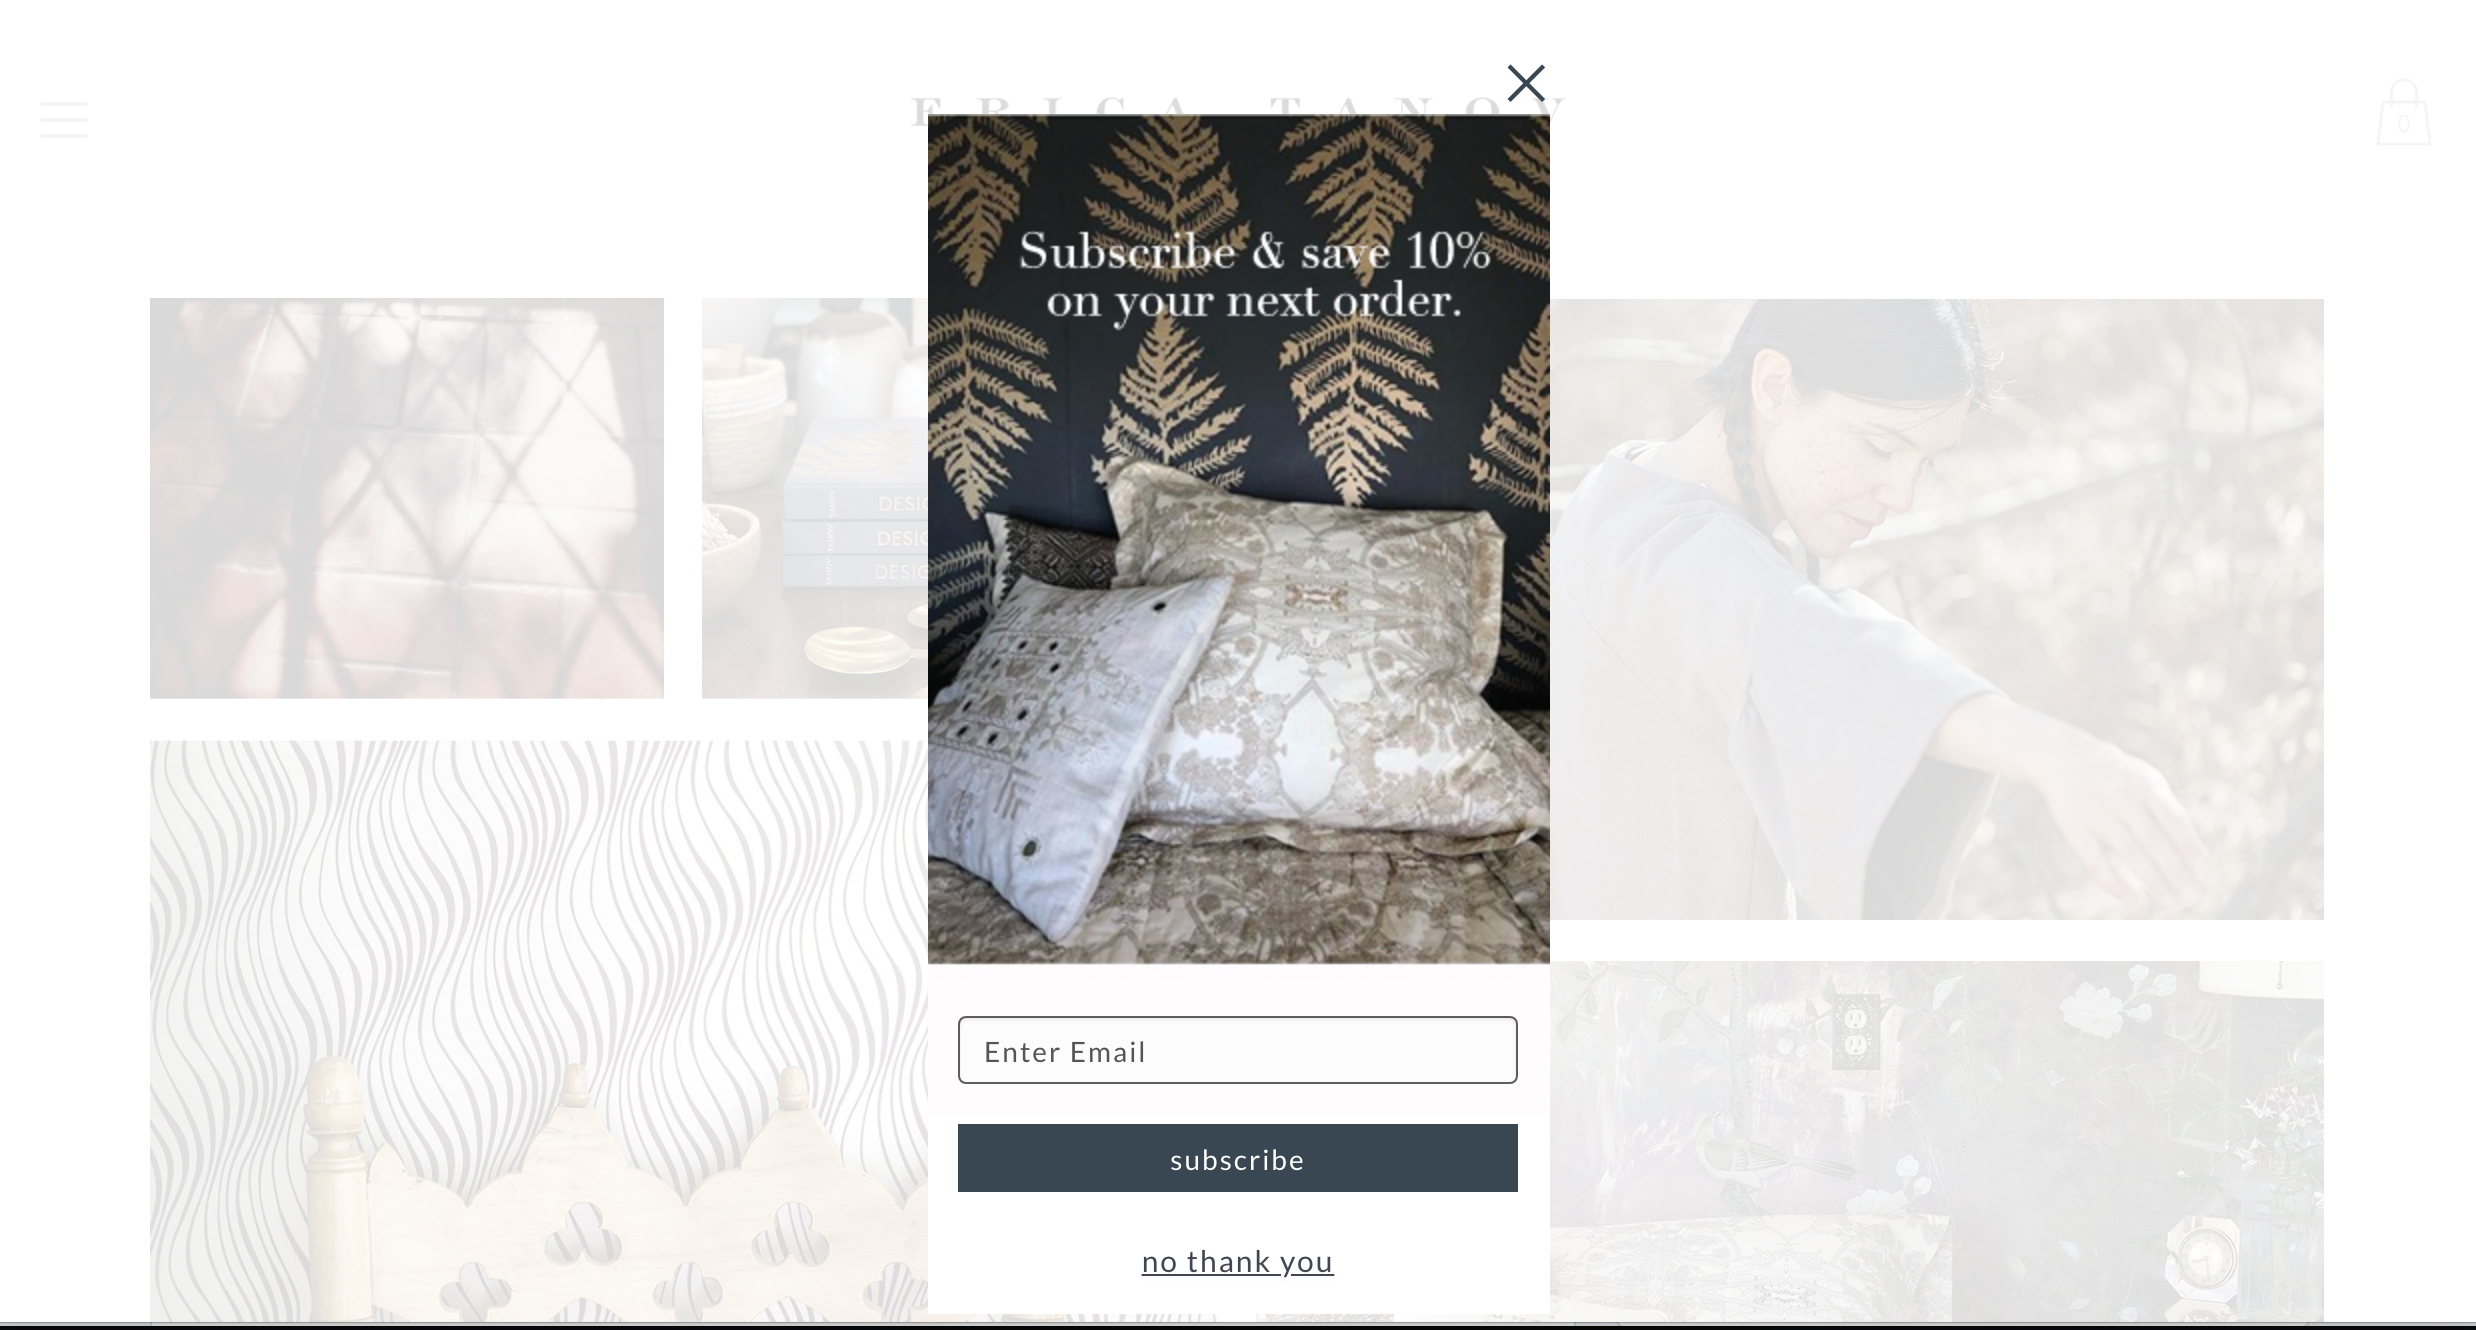 Grogeous email popup using Gather